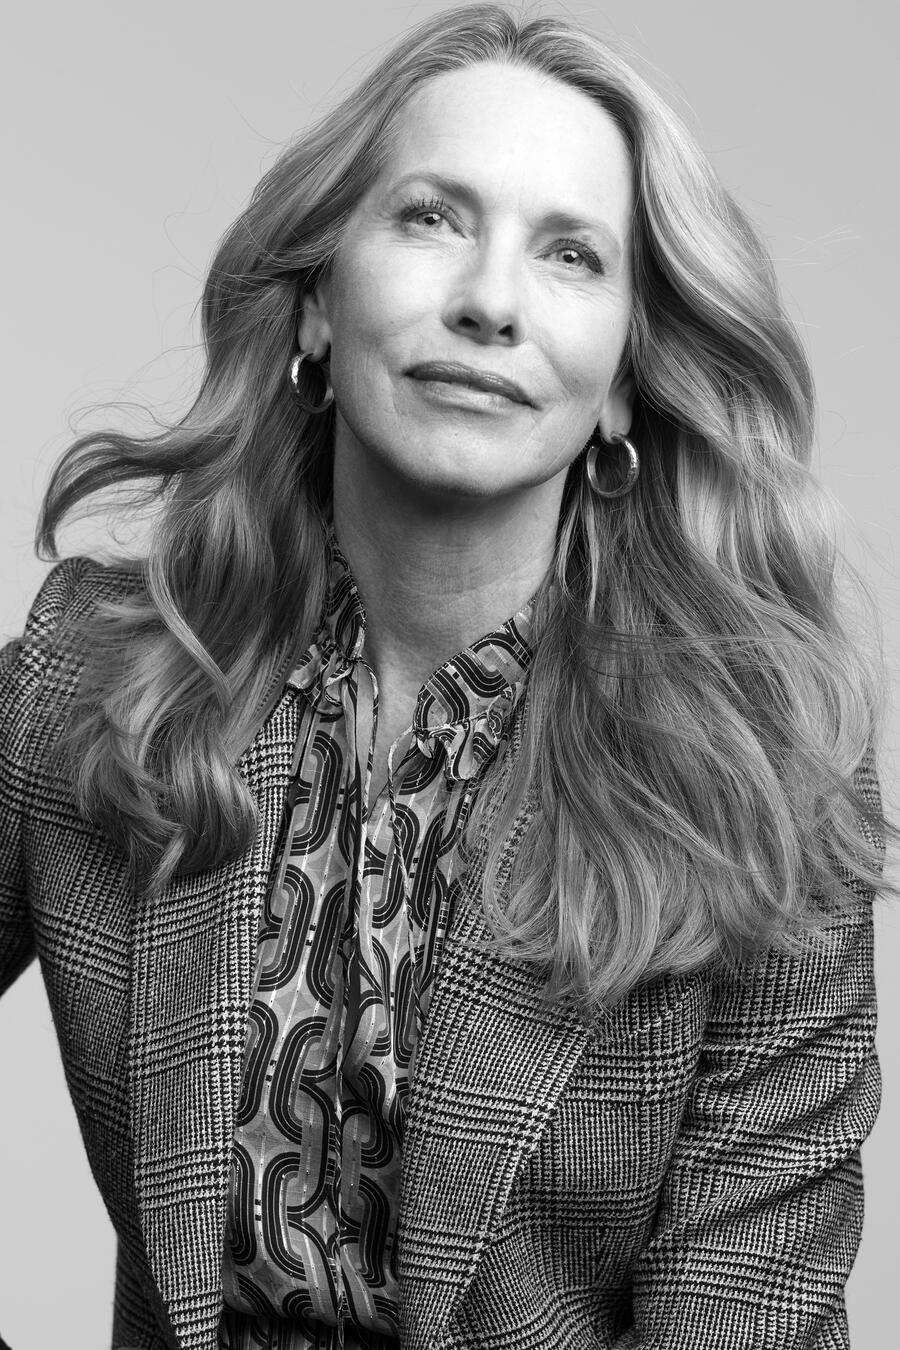 Laurene Powell Jobs in New York on Jan. 30, 2020. Nearly a decade after the death of her husband, the Apple co-founder Steve Jobs, she has become increasingly ambitious with her business and philanthropy while keeping a low profile. (Craig McDean/The New York Times)